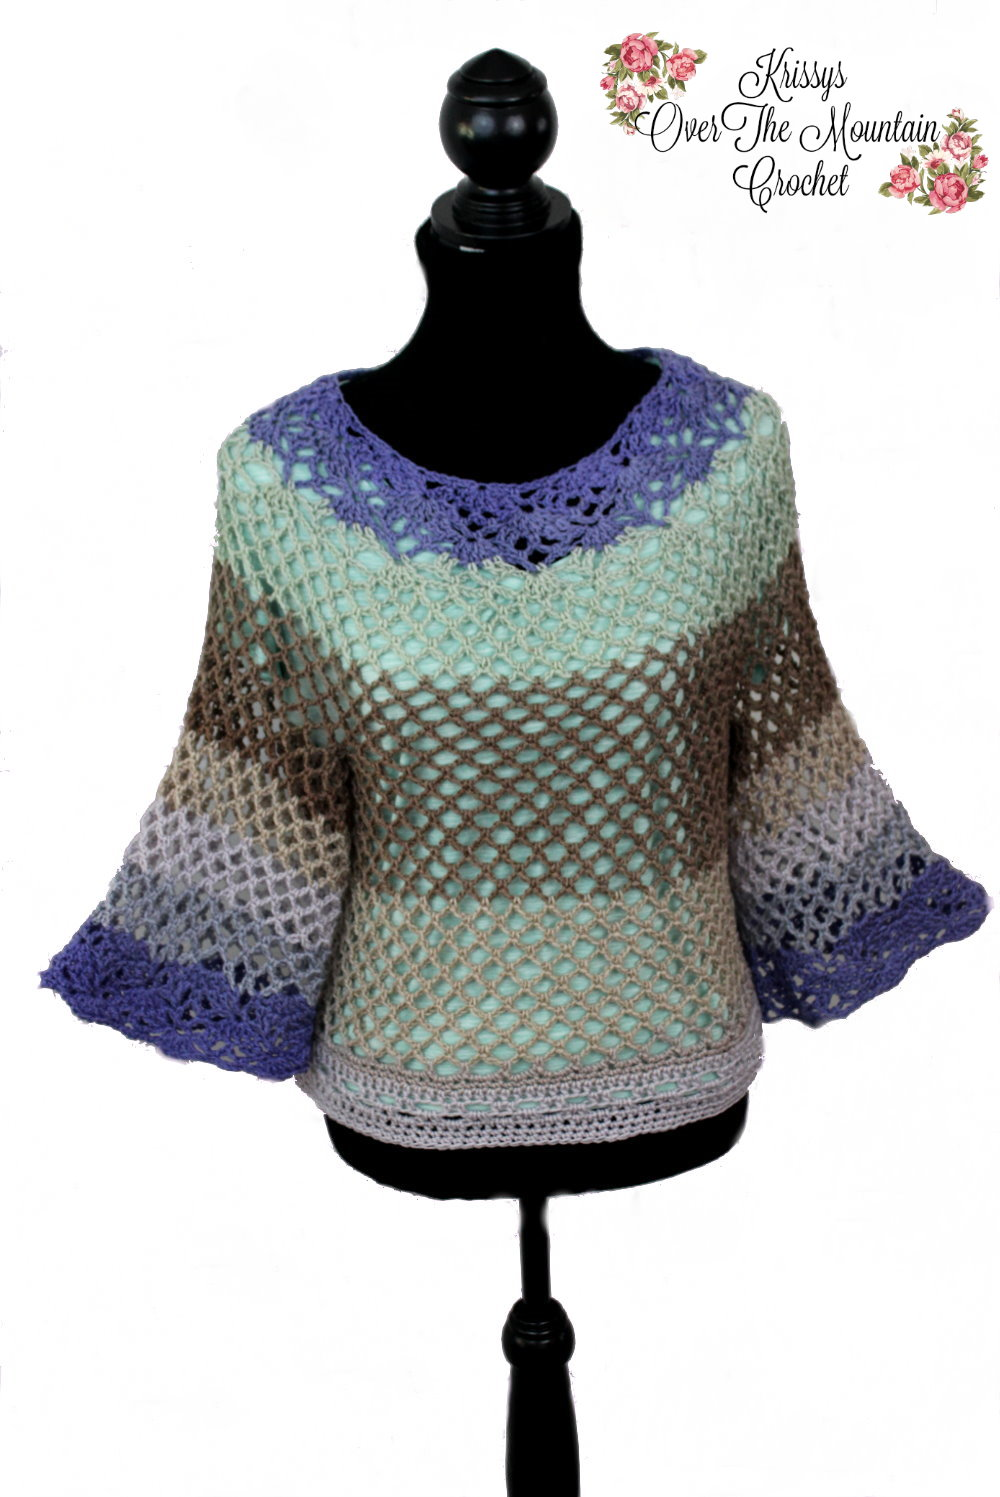 Over Brook Tunic made with DC Colors yarn. Easy tunic crochet pattern.